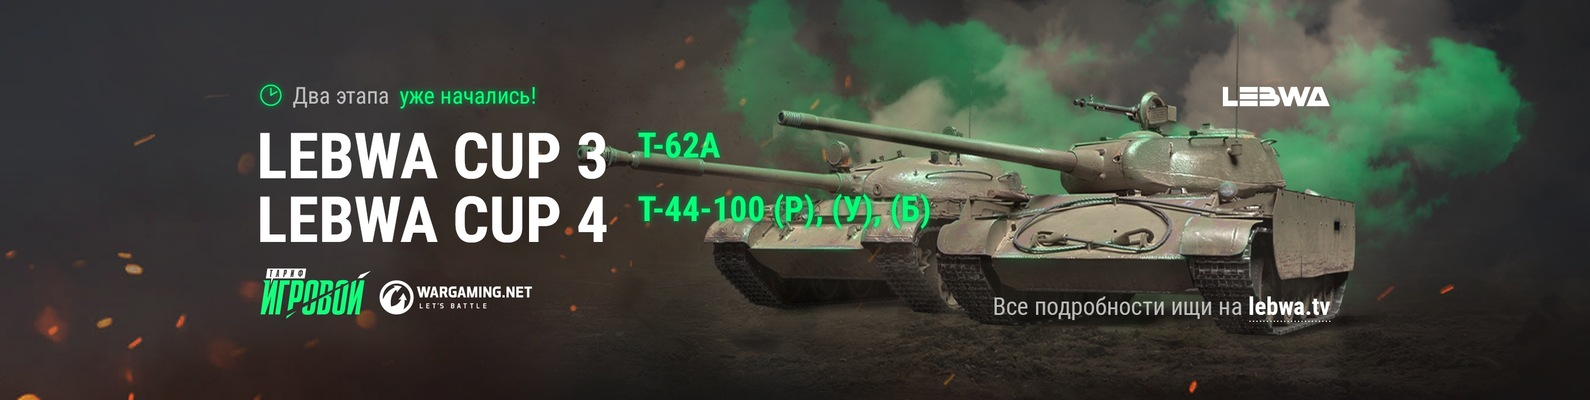 Танки для war thunder marketplace skin